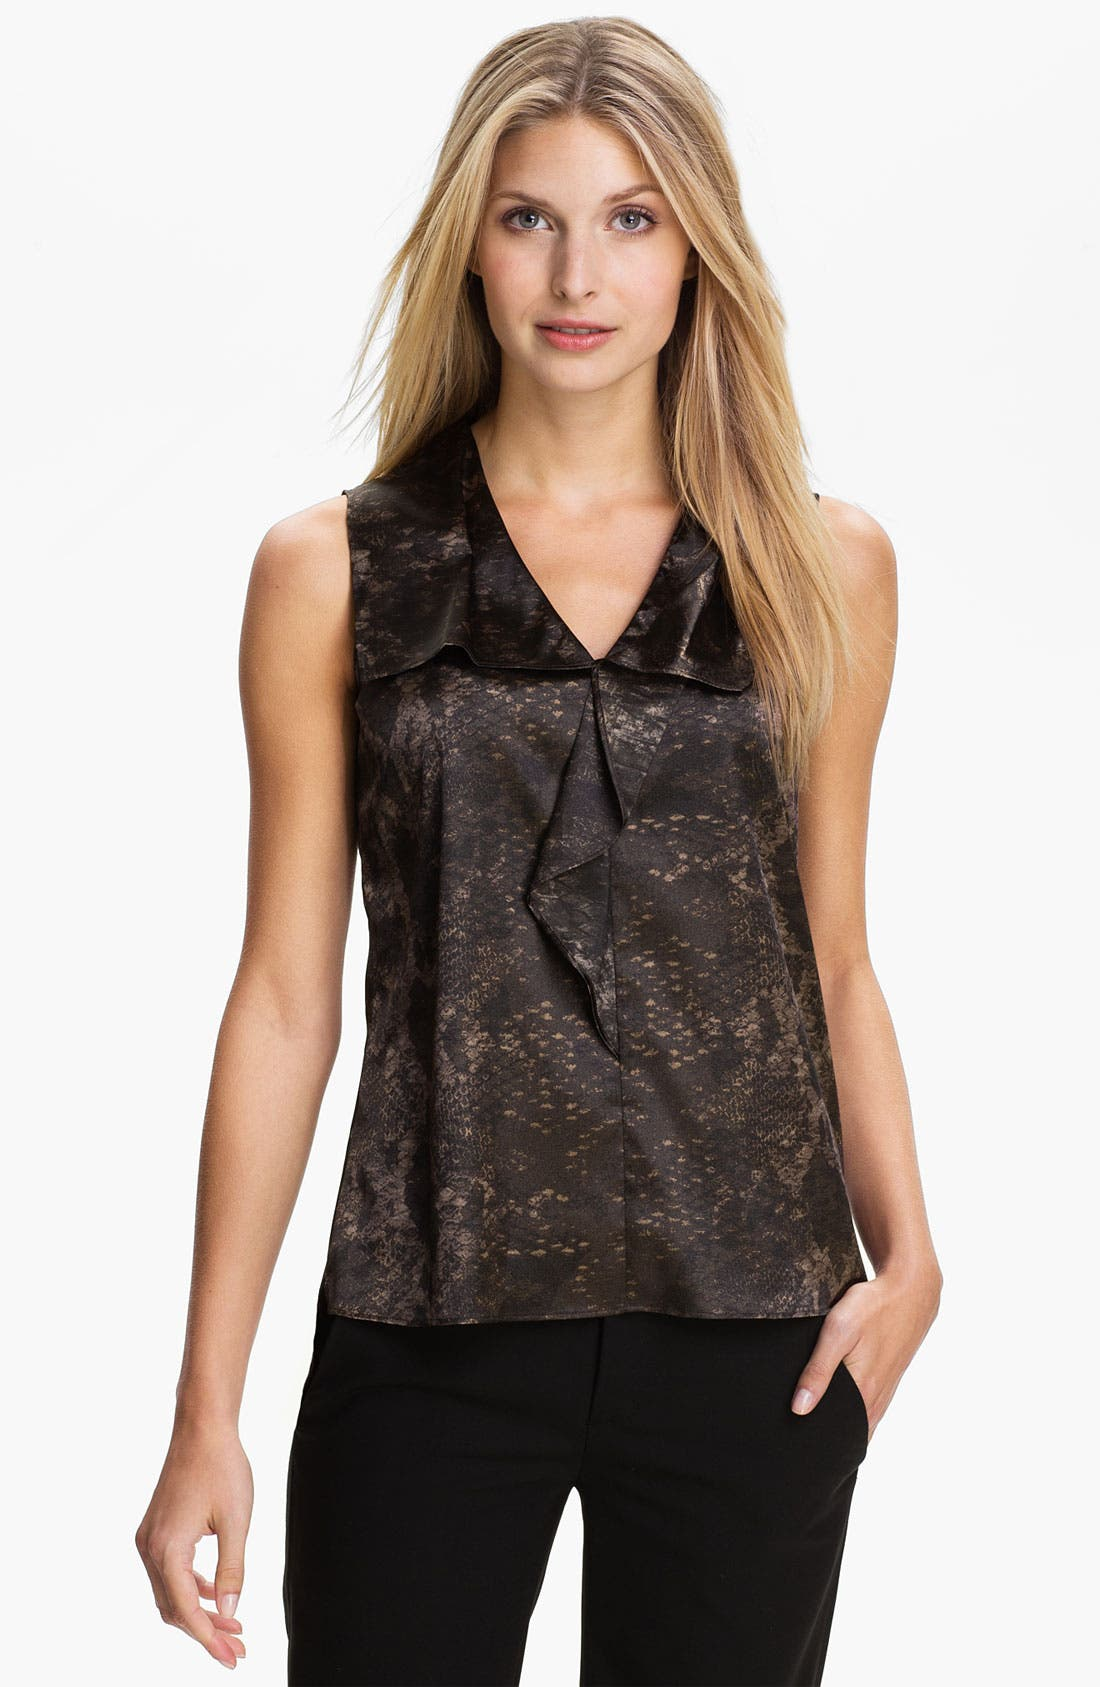 Alternate Image 1 Selected - T Tahari 'Bessy' Sleeveless Blouse (Petite)